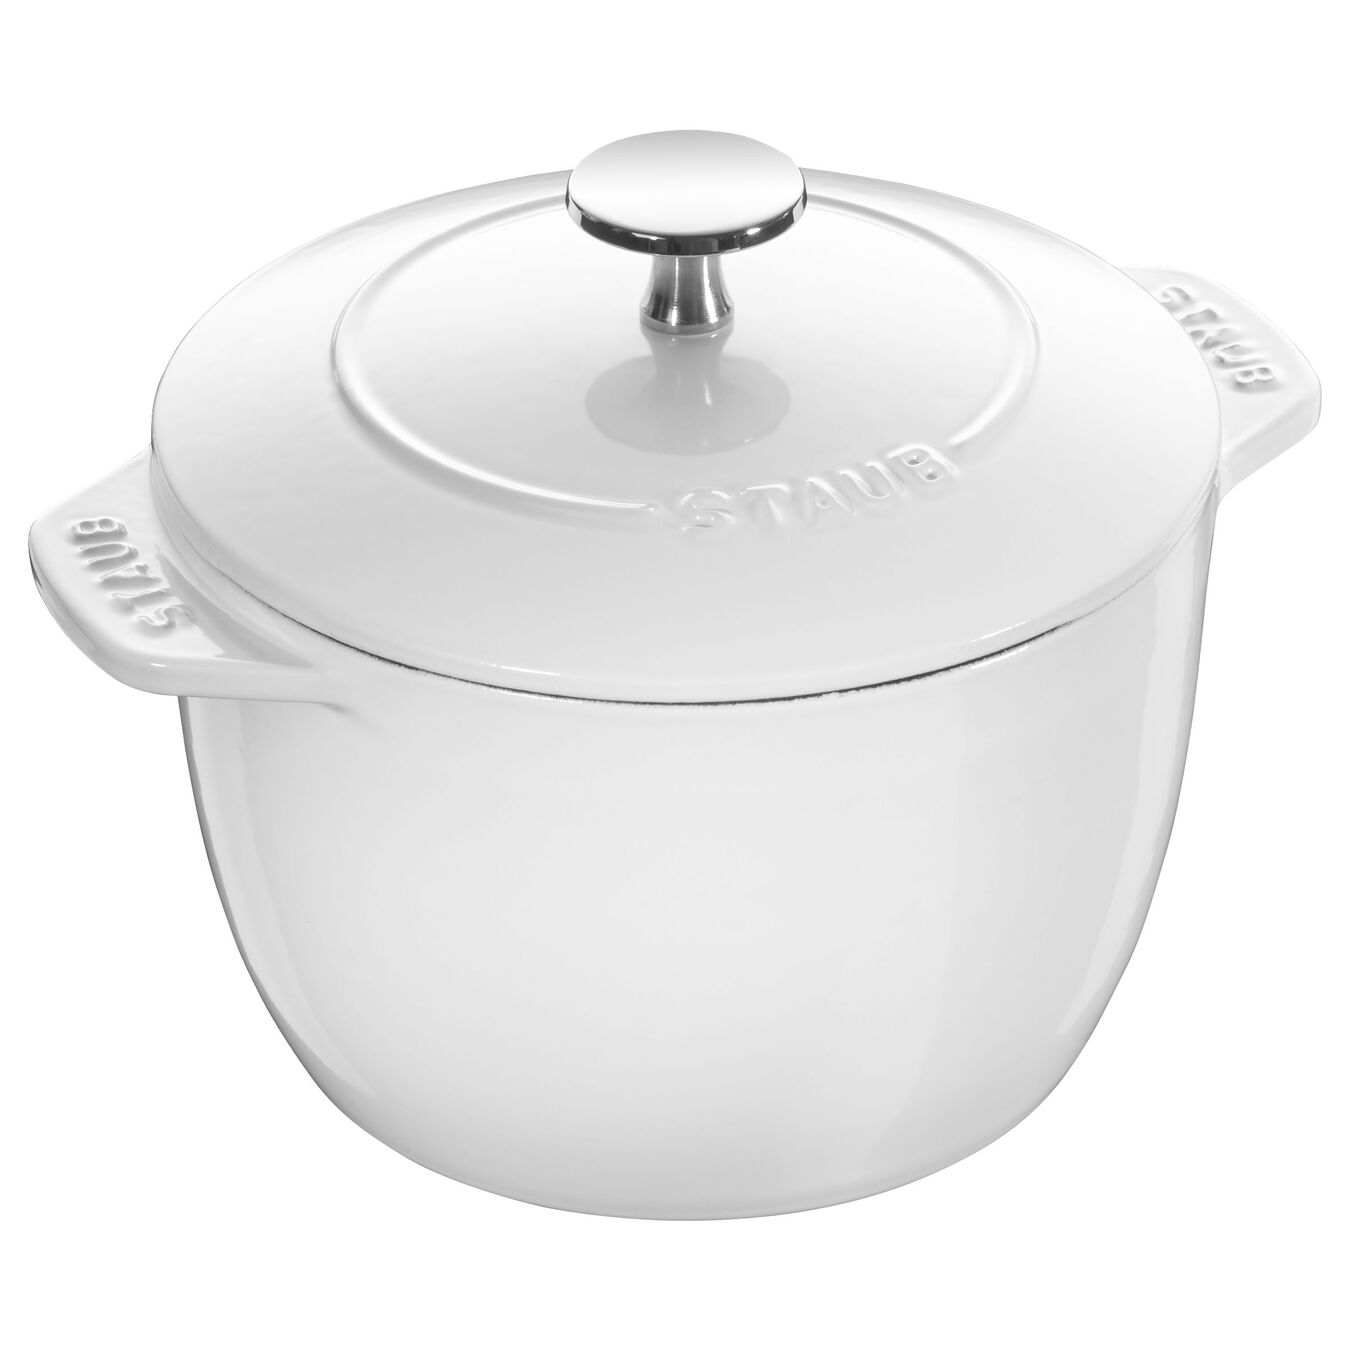 1.5-qt Petite French Oven - Matte White,,large 1